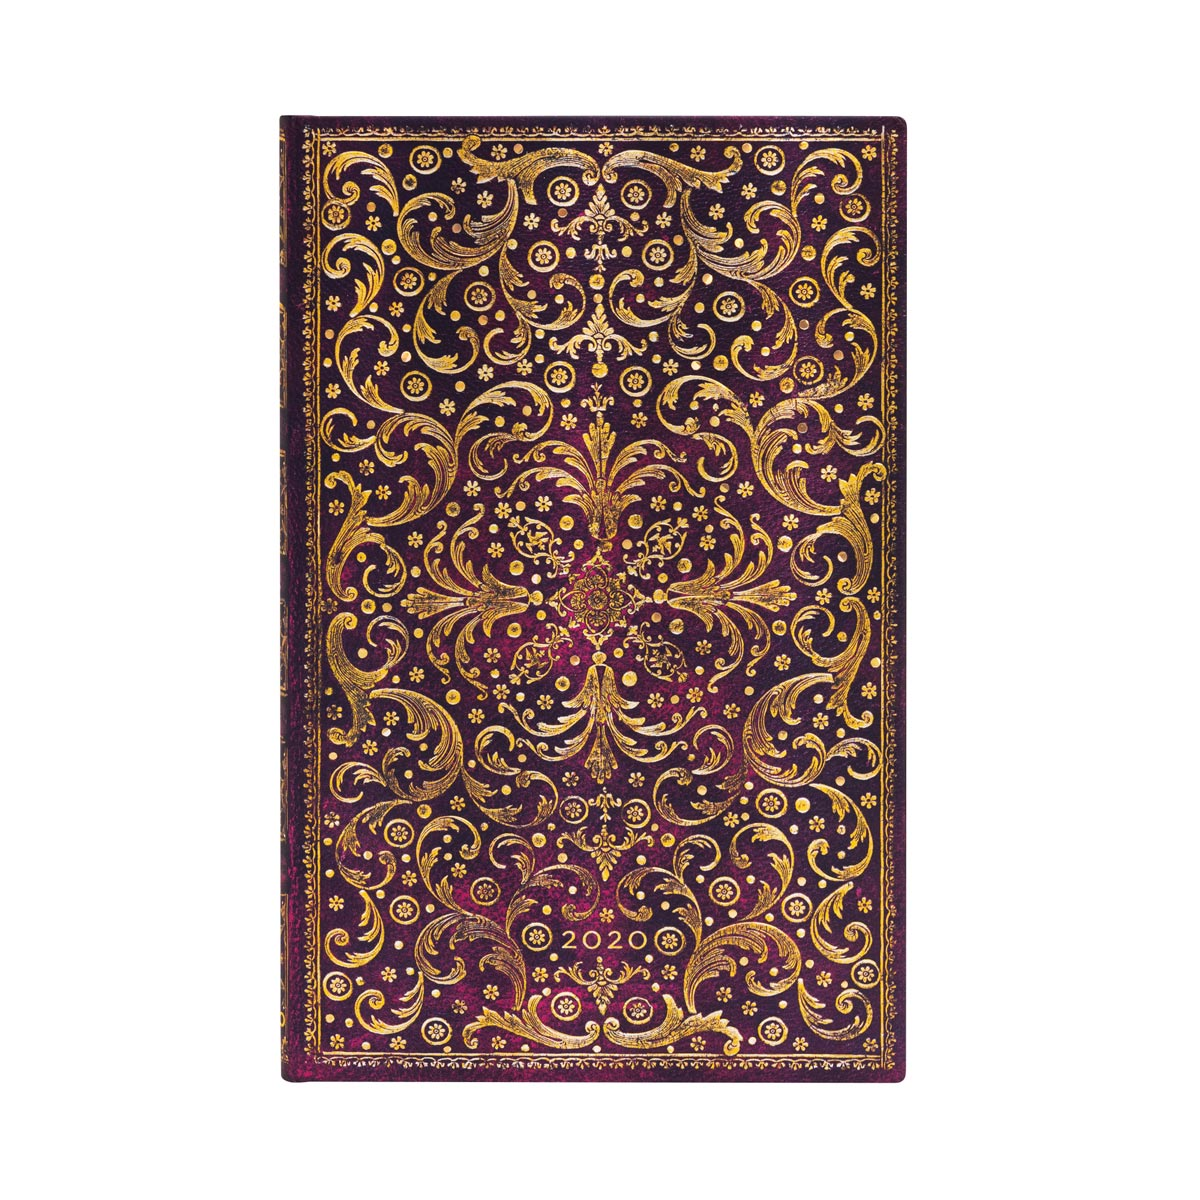 Paperblanks Maxi Aurelia 2020 Week-At-A-Time Planner